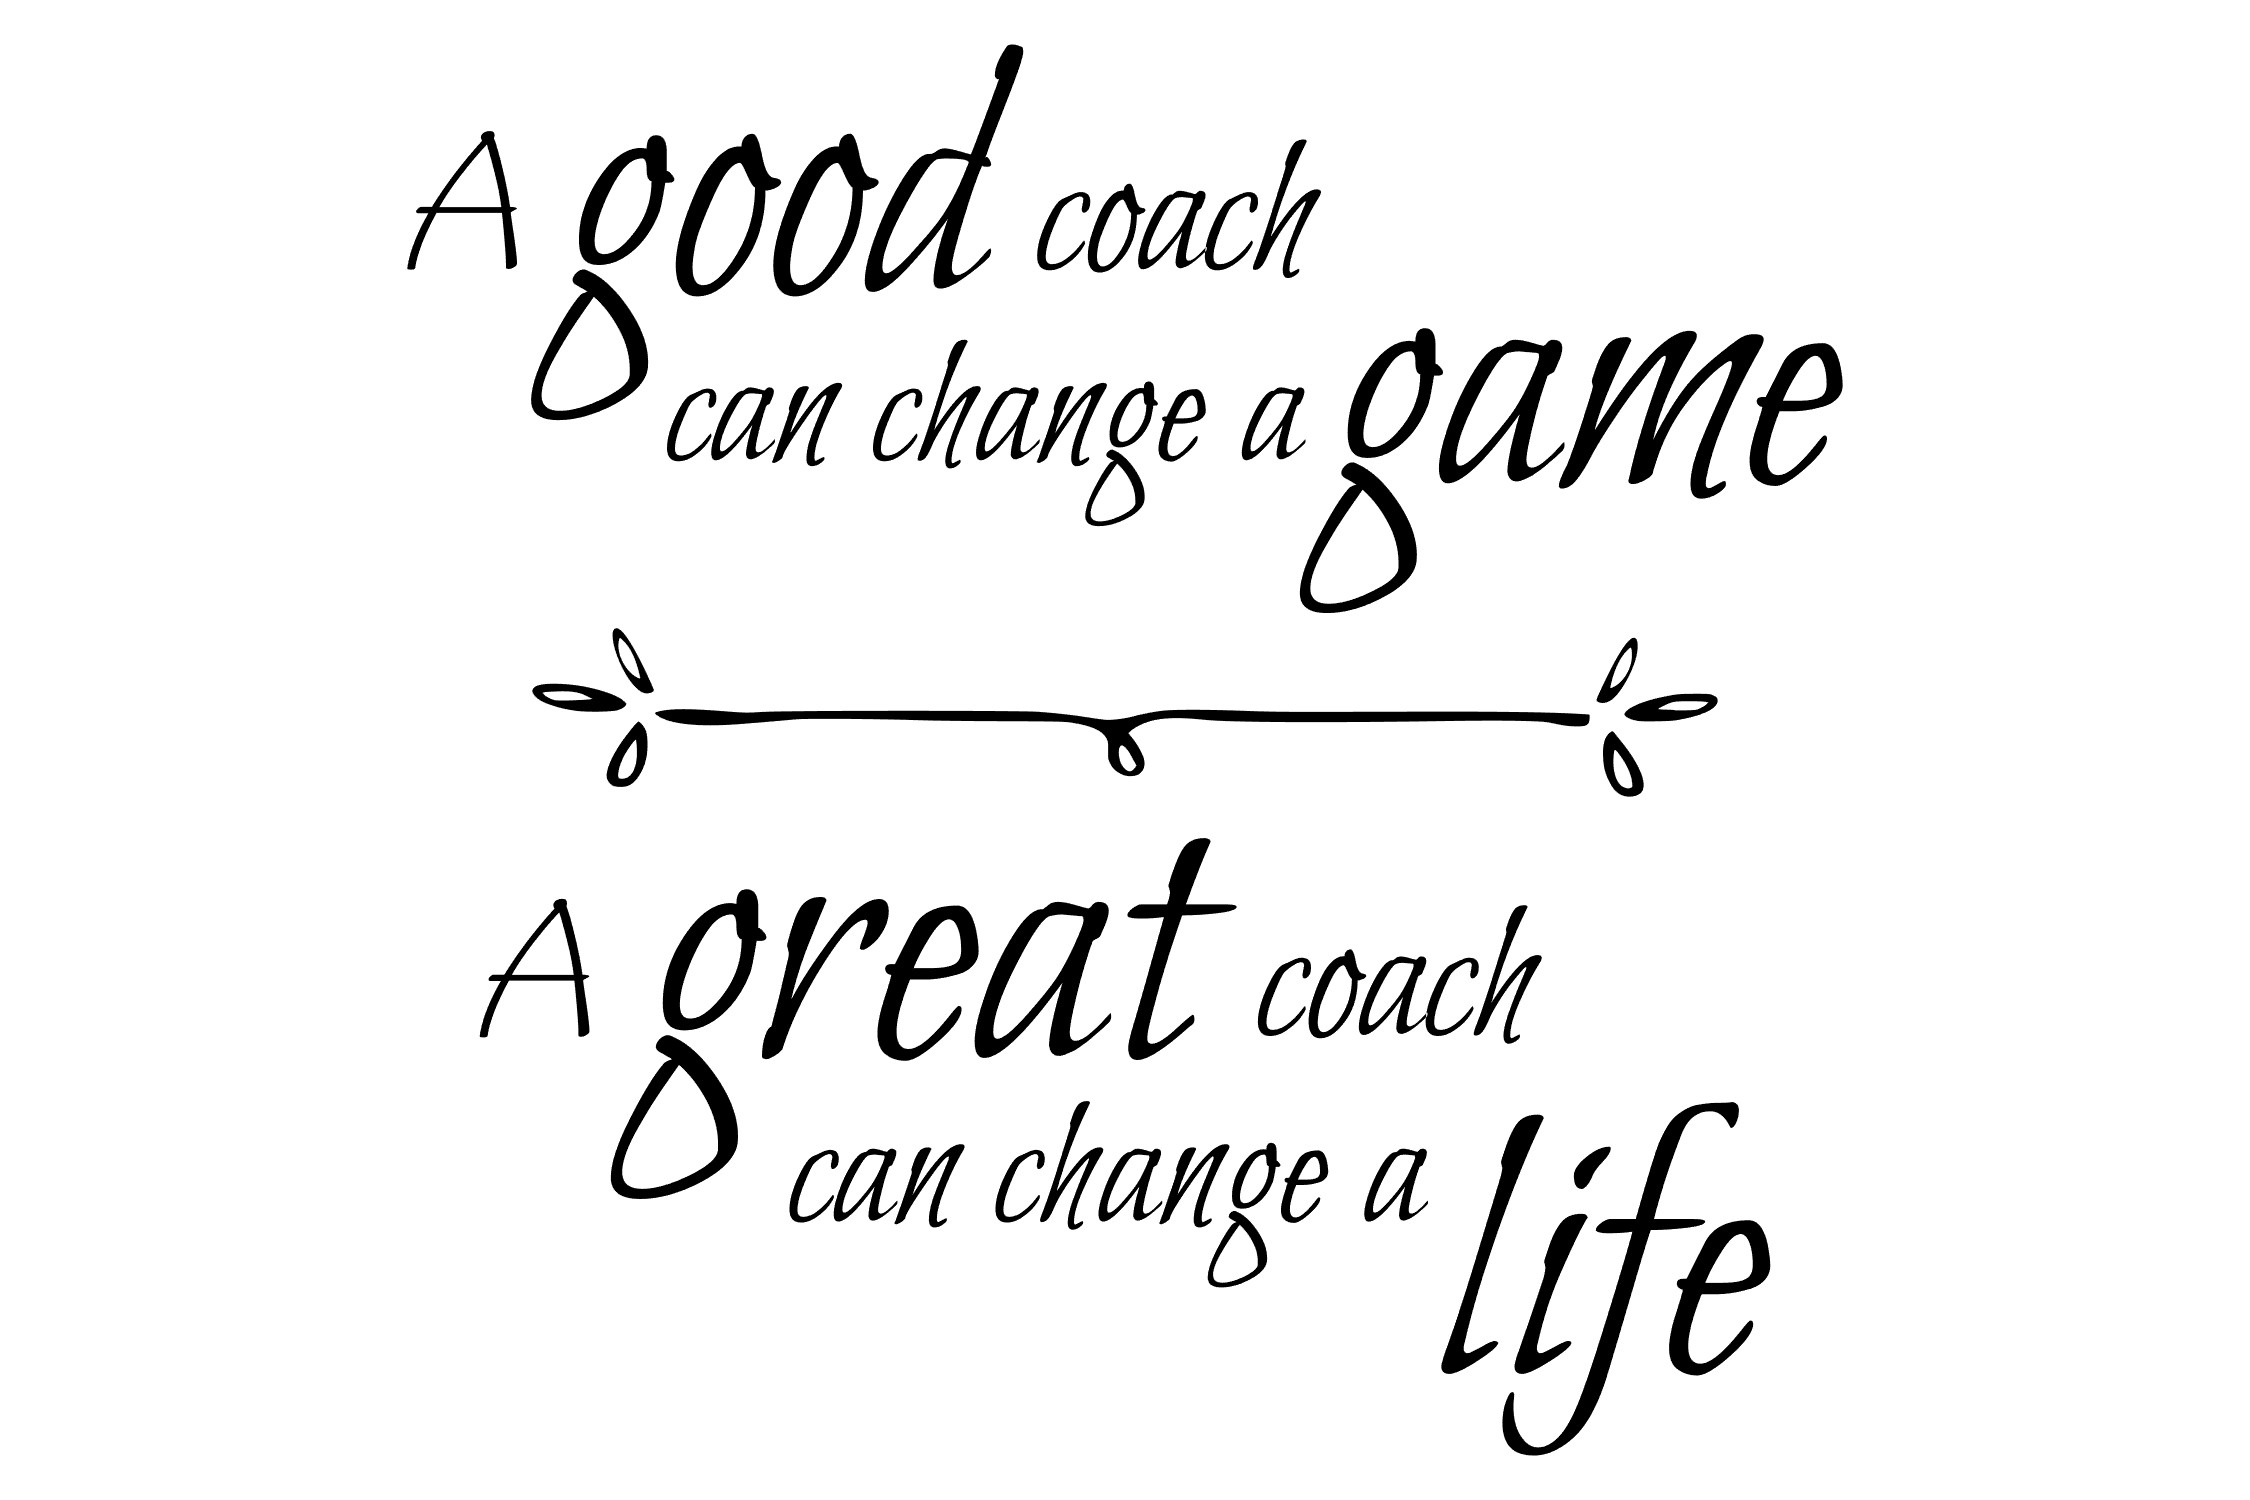 A great coach can change a life - SVG PNG EPS example image 2